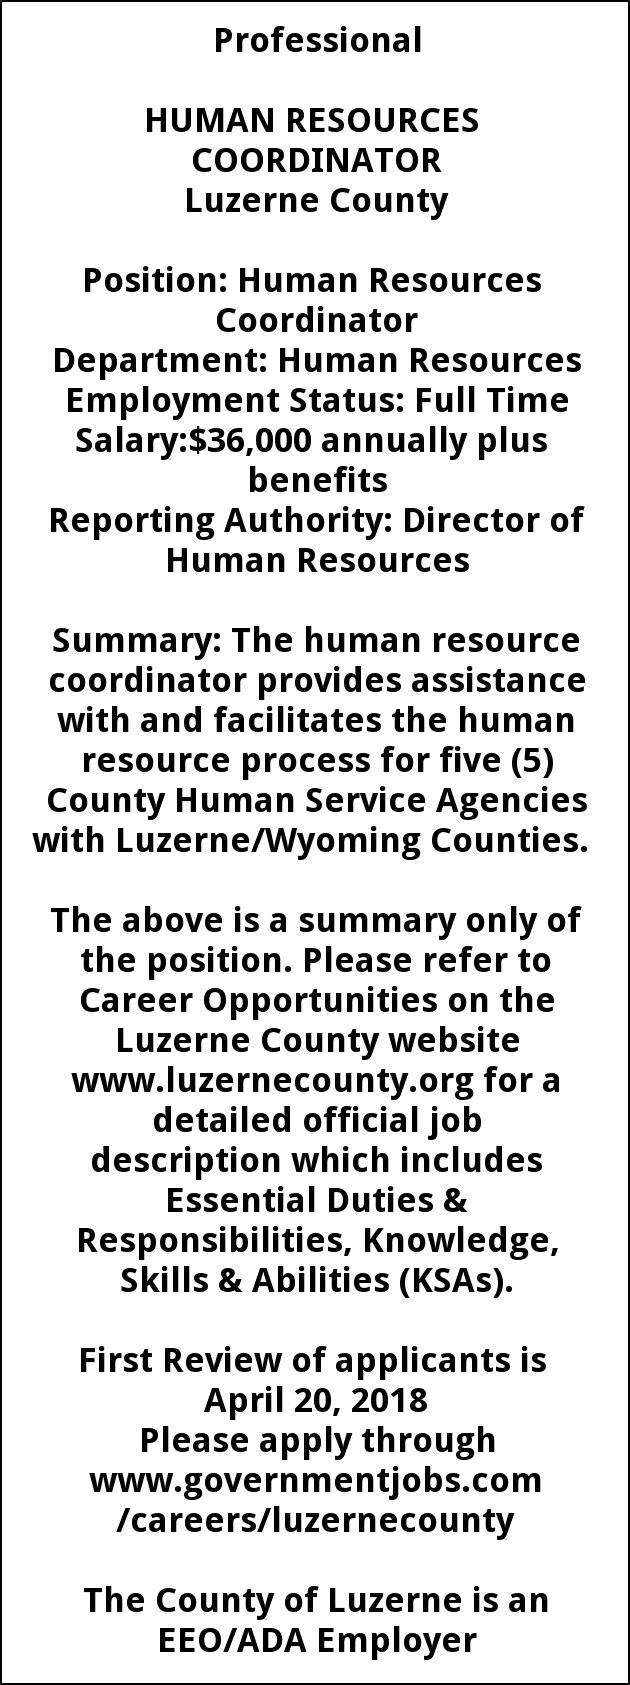 Human Resources Coordinator